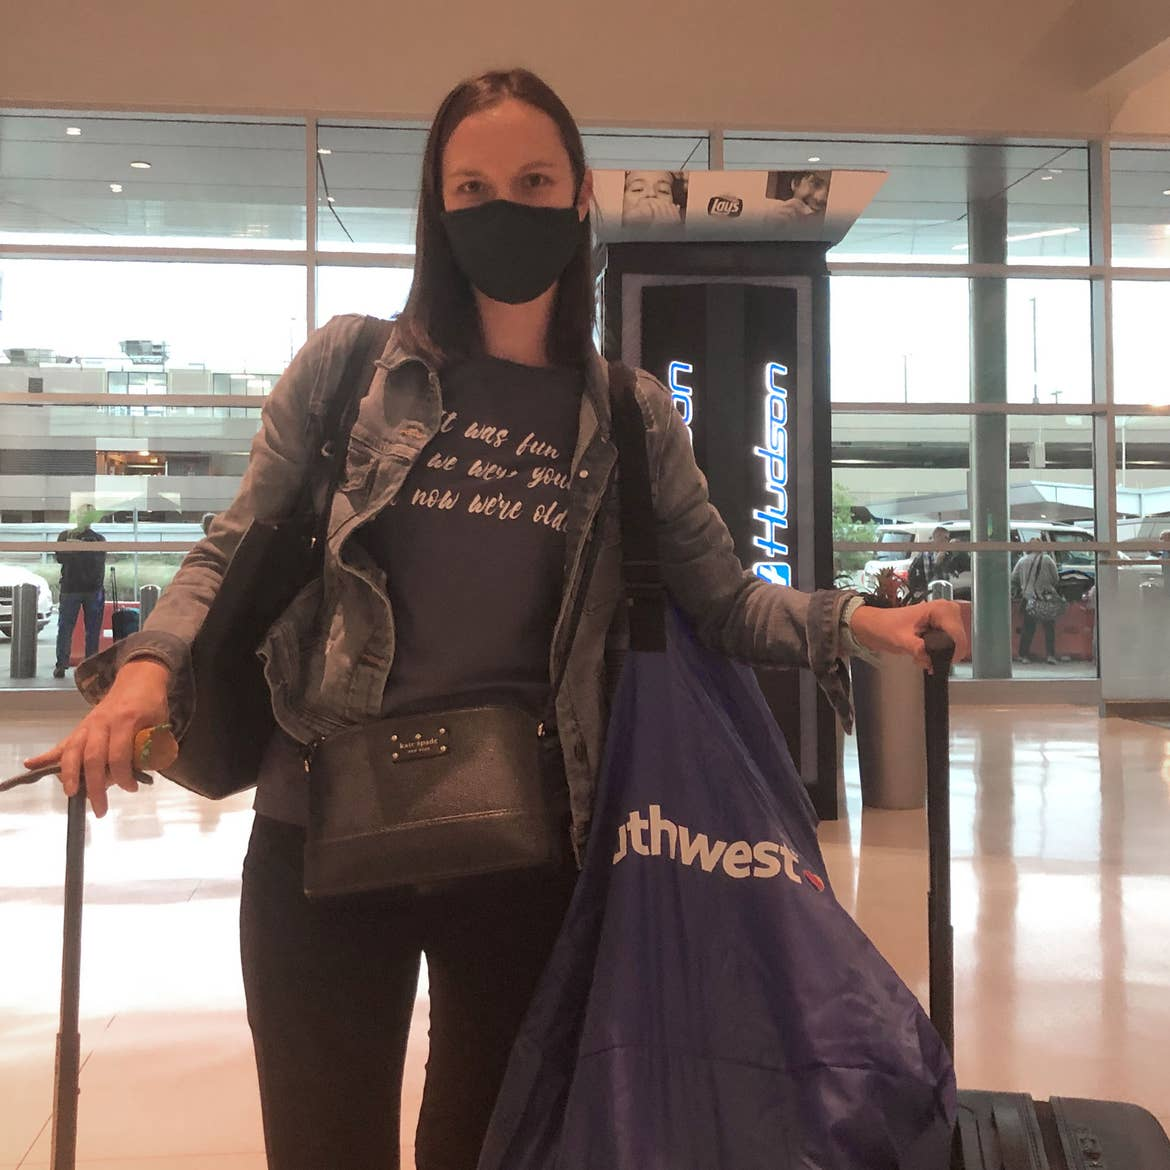 Author, Sarah, stands wearing a mask and holding several bags and suitcases containing the necessities for a safe flight.